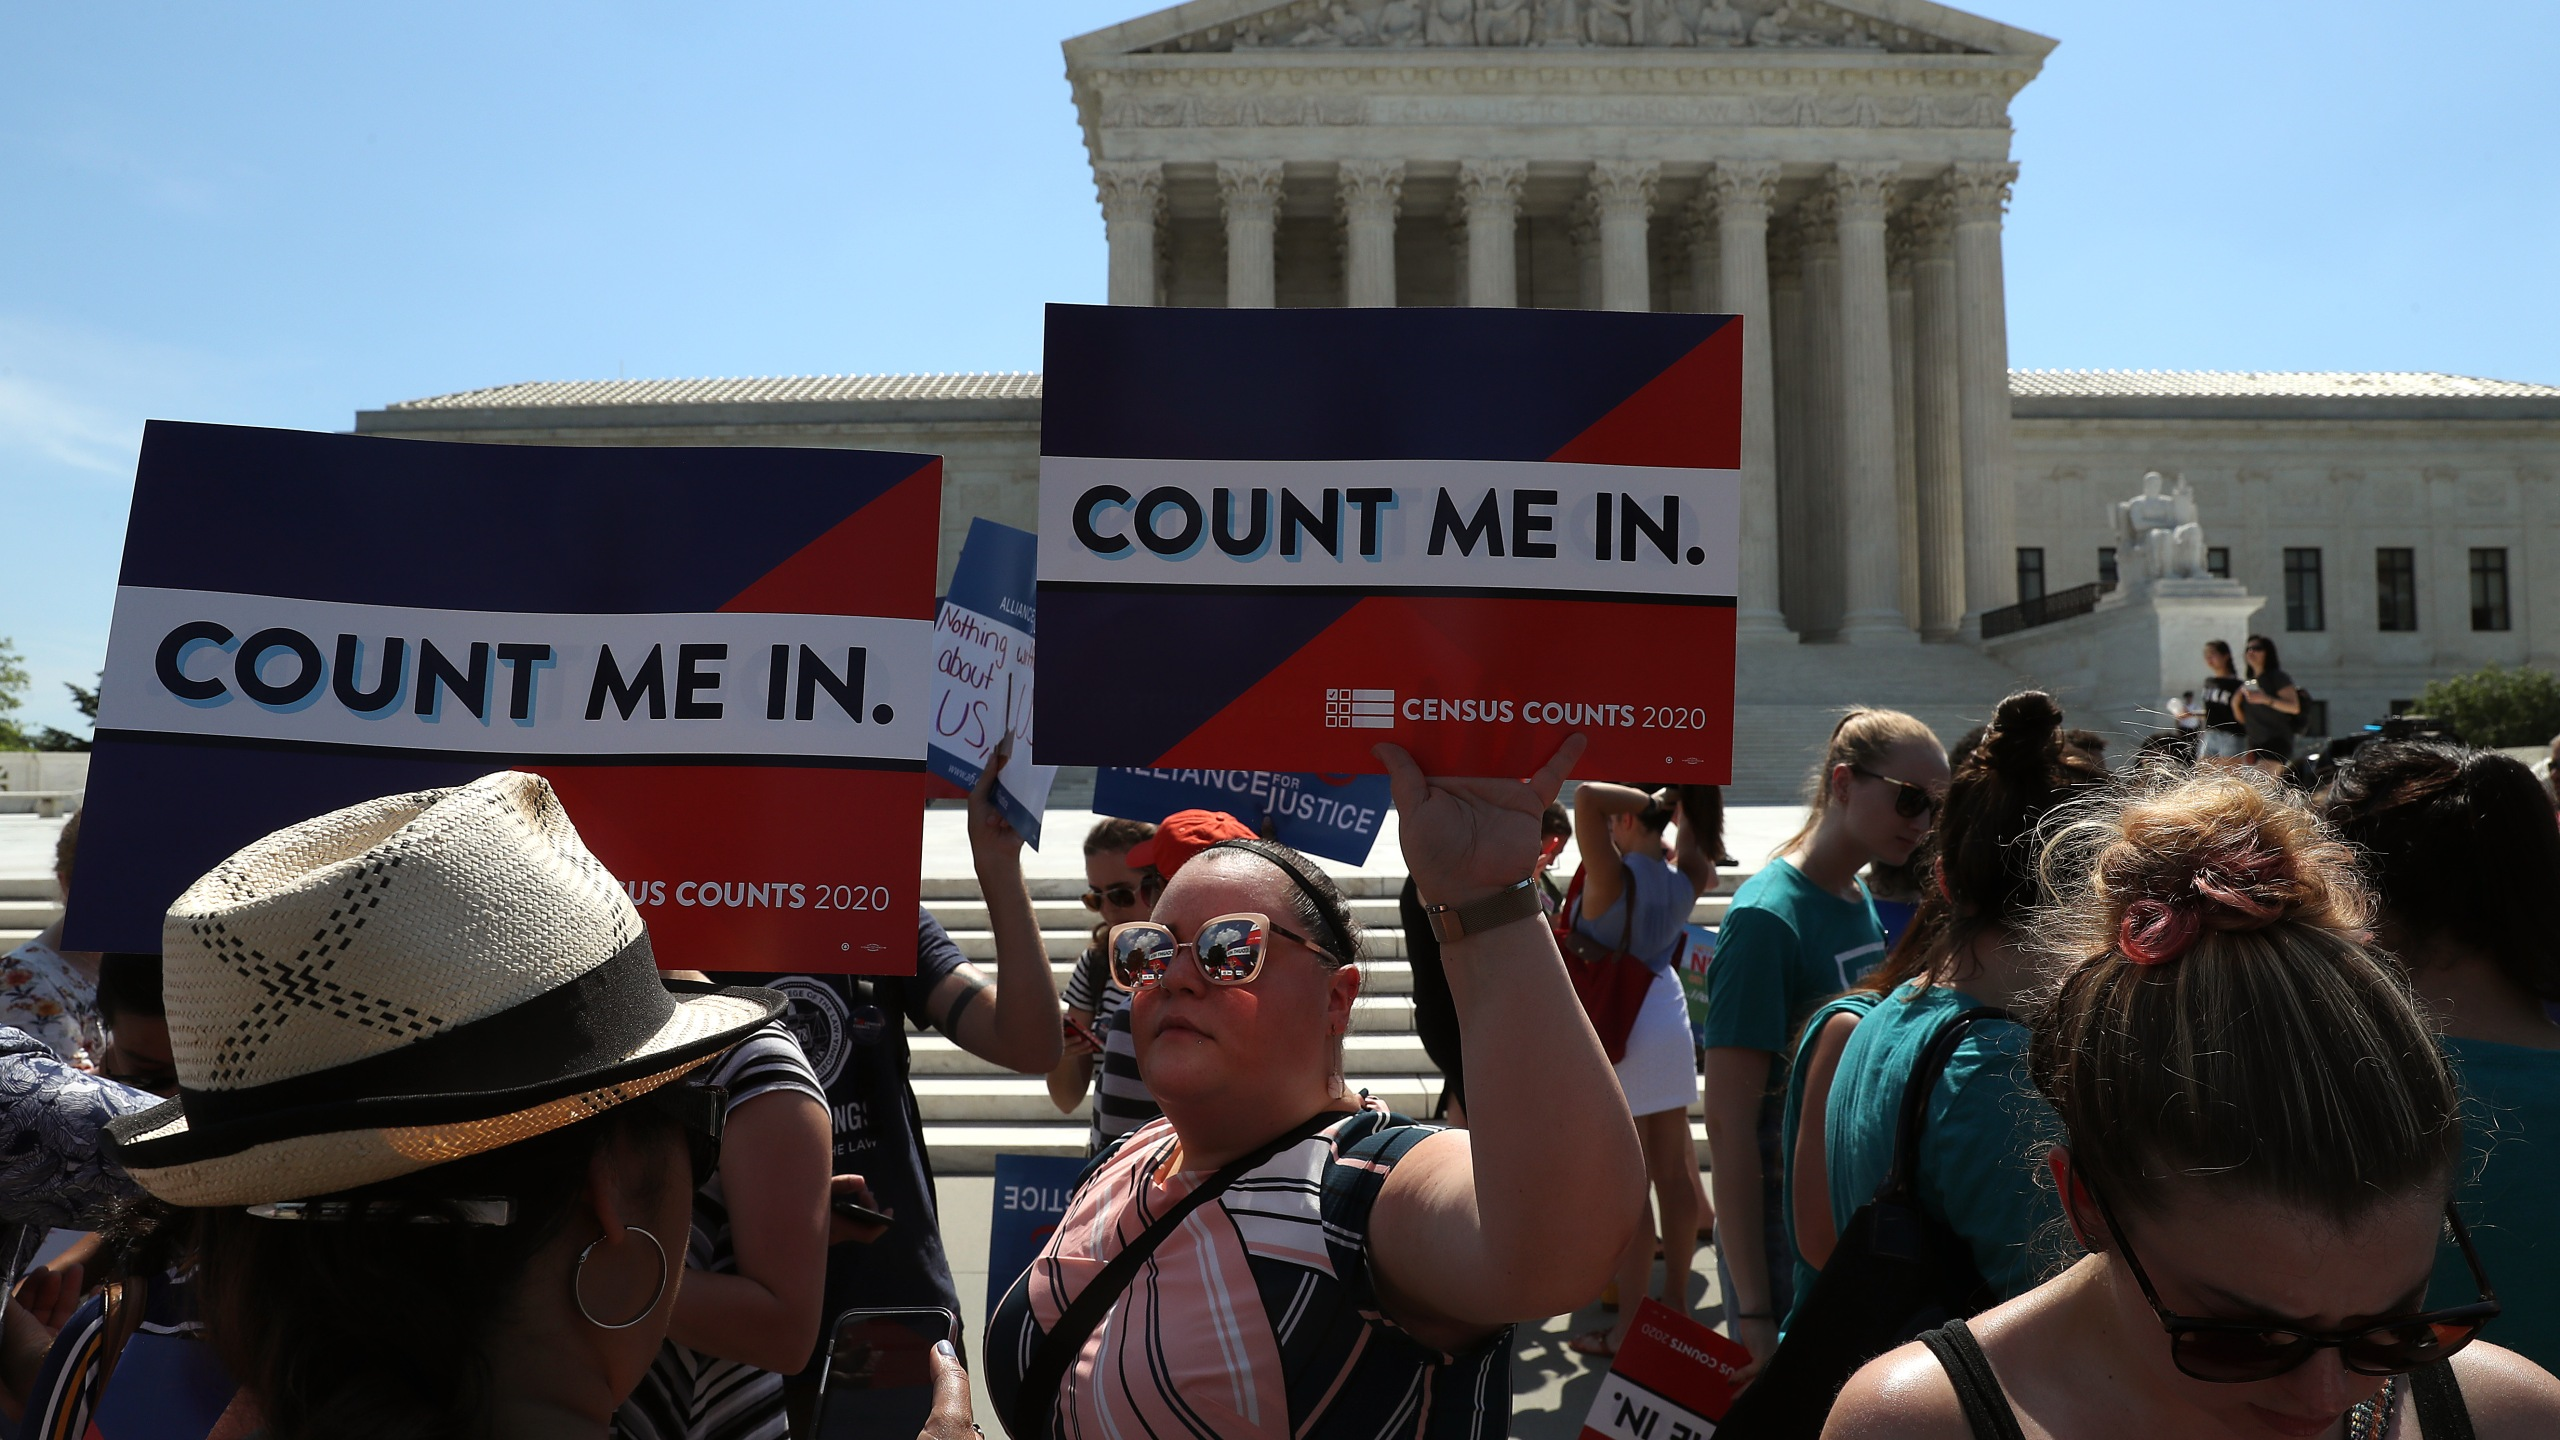 People gather in in front of the U.S. Supreme Court as decisions are handed down on June 27, 2019, in Washington, D.C. (Credit: Mark Wilson/Getty Images)